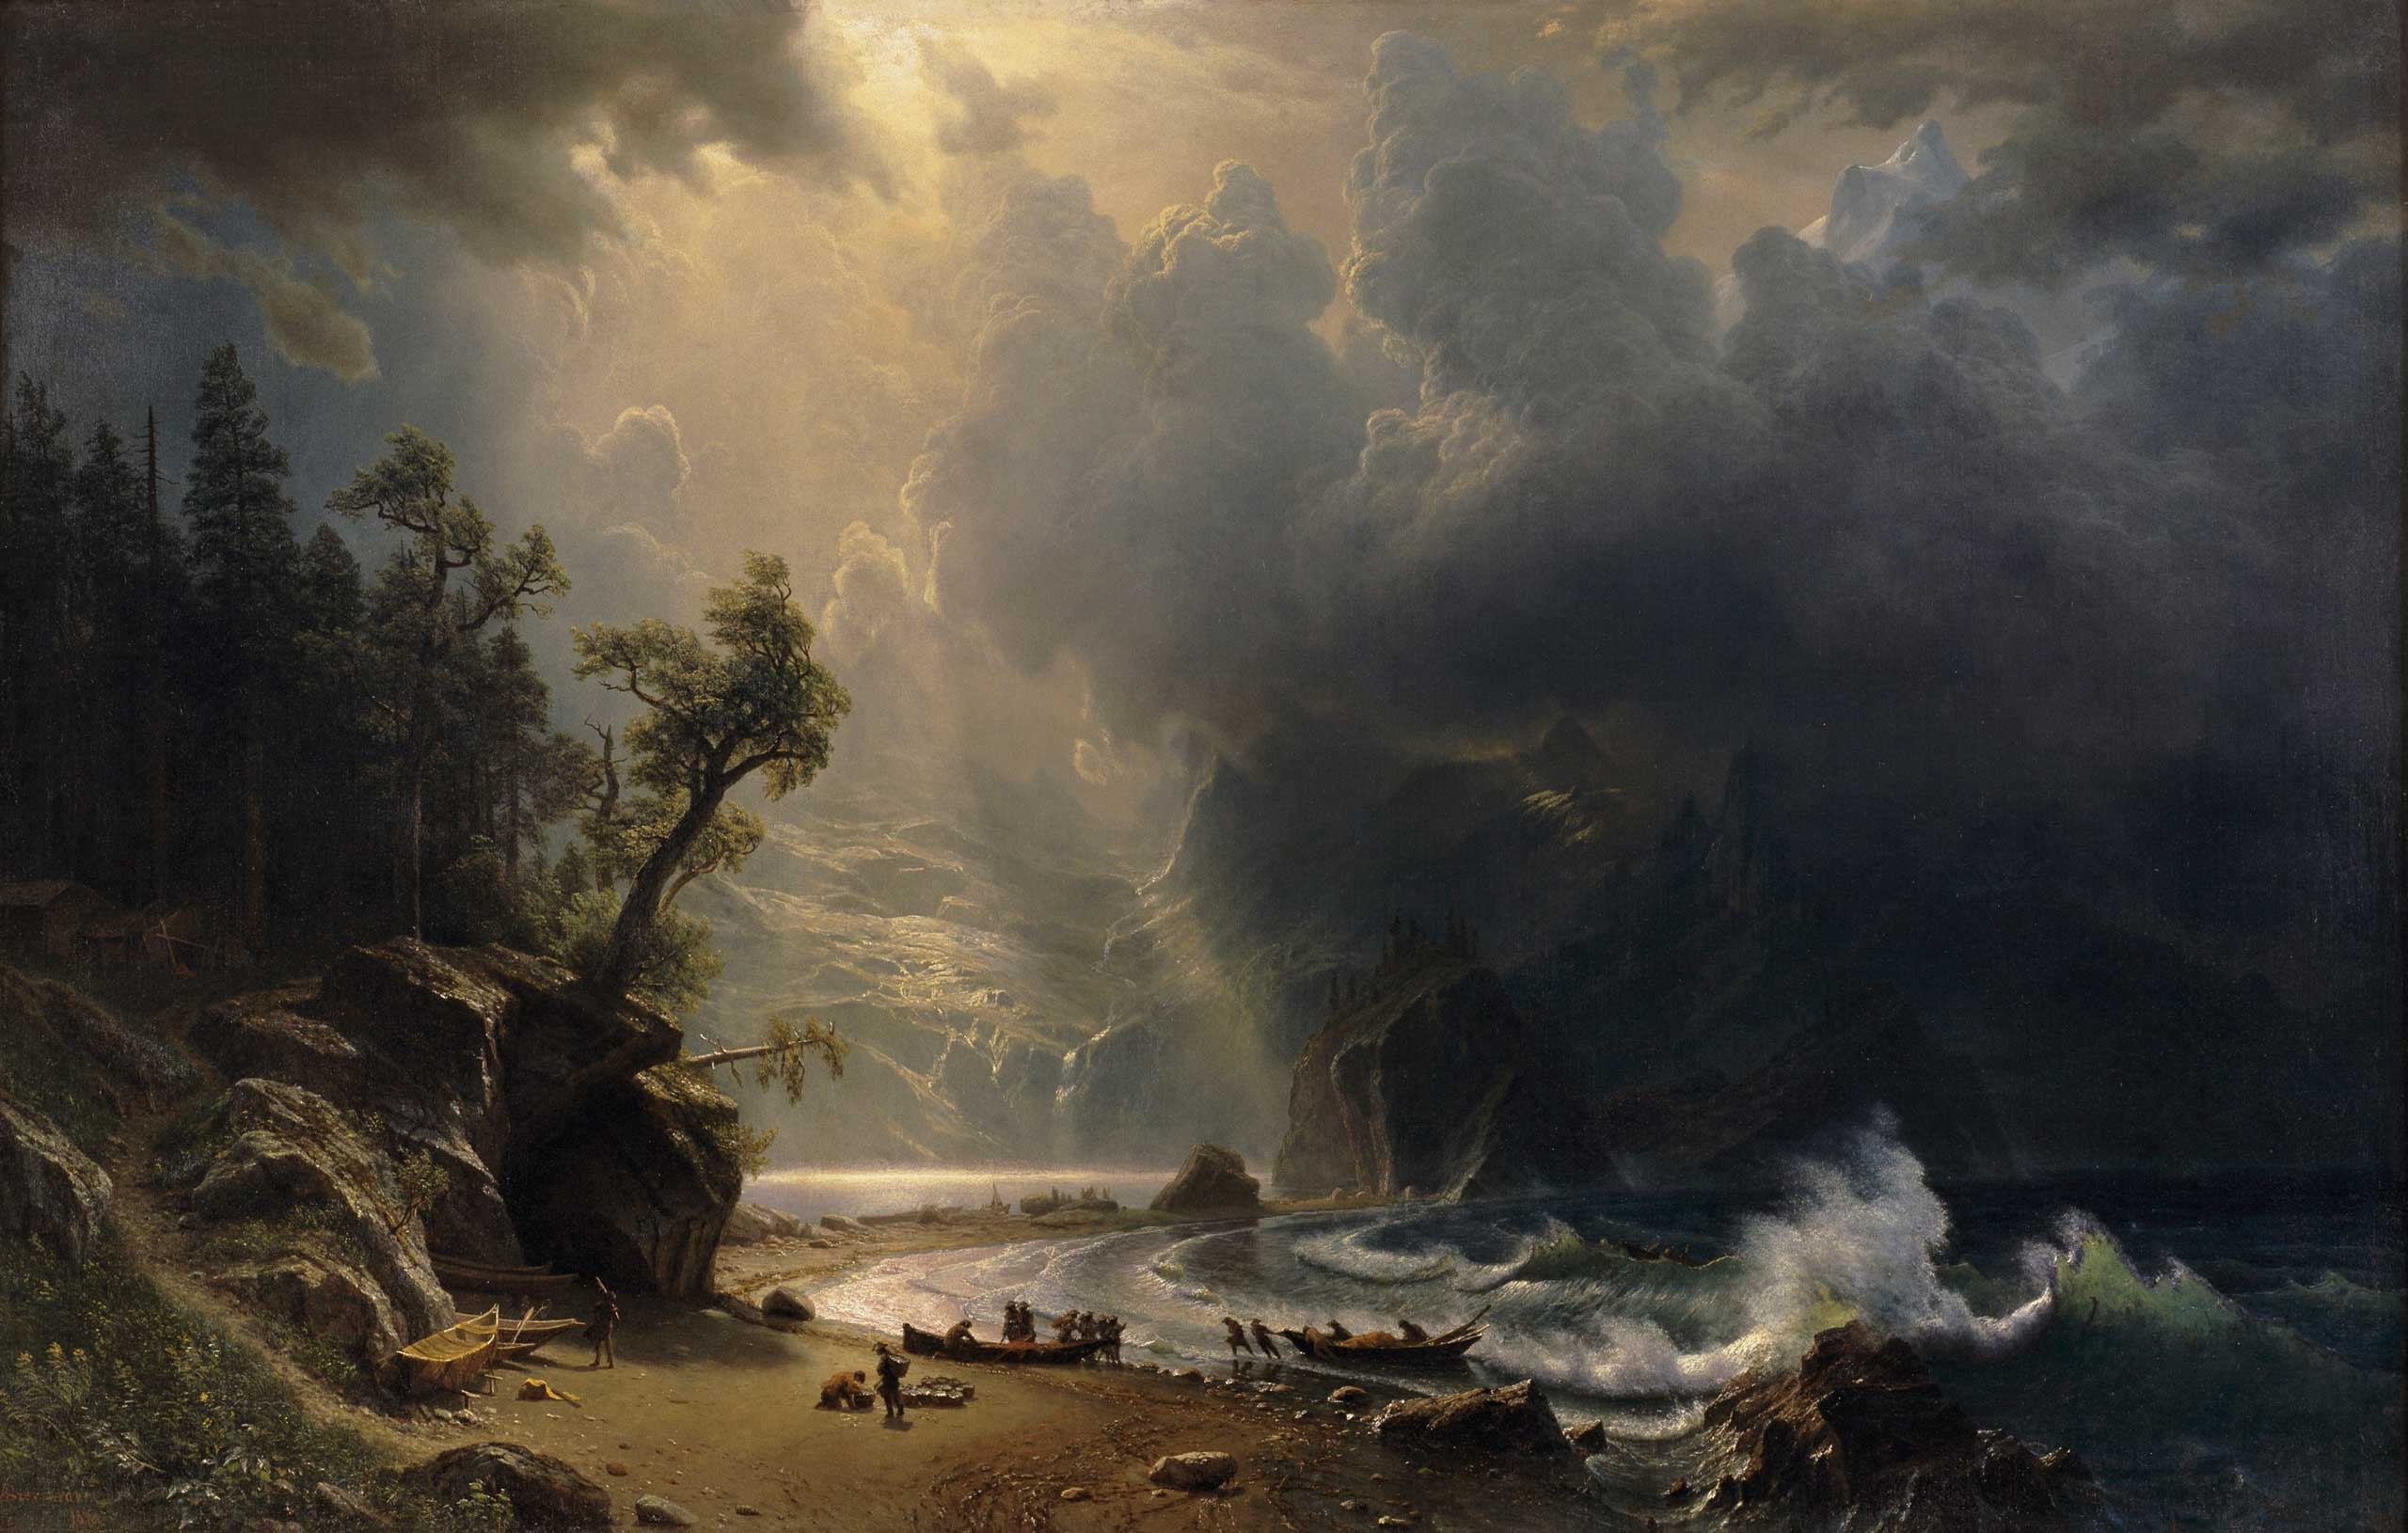 Albert Bierstadt (German, 1830–1902), Puget Sound on the Pacific Coast, 1870. Oil on canvas, 52 1/2 x 82 in. Seattle Art Museum, Gift of the Friends of American Art at the Seattle Art Museum, with additional funds from the General Acquisition Fund, 2000.70